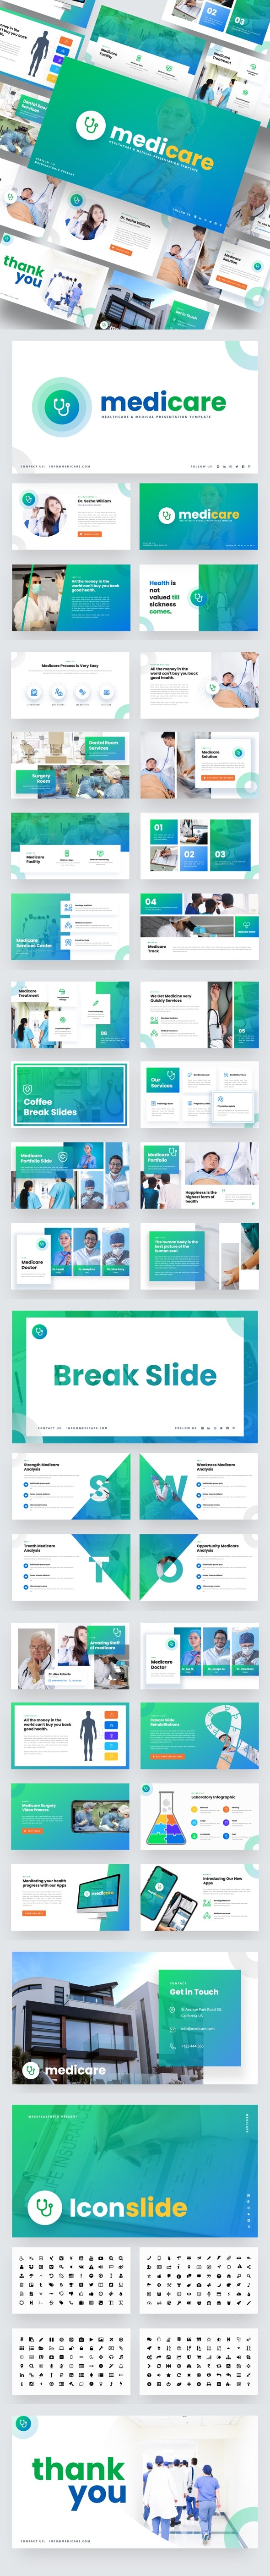 Medicare - Healthcare & Medical Powerpoint Template - Business PowerPoint Templates